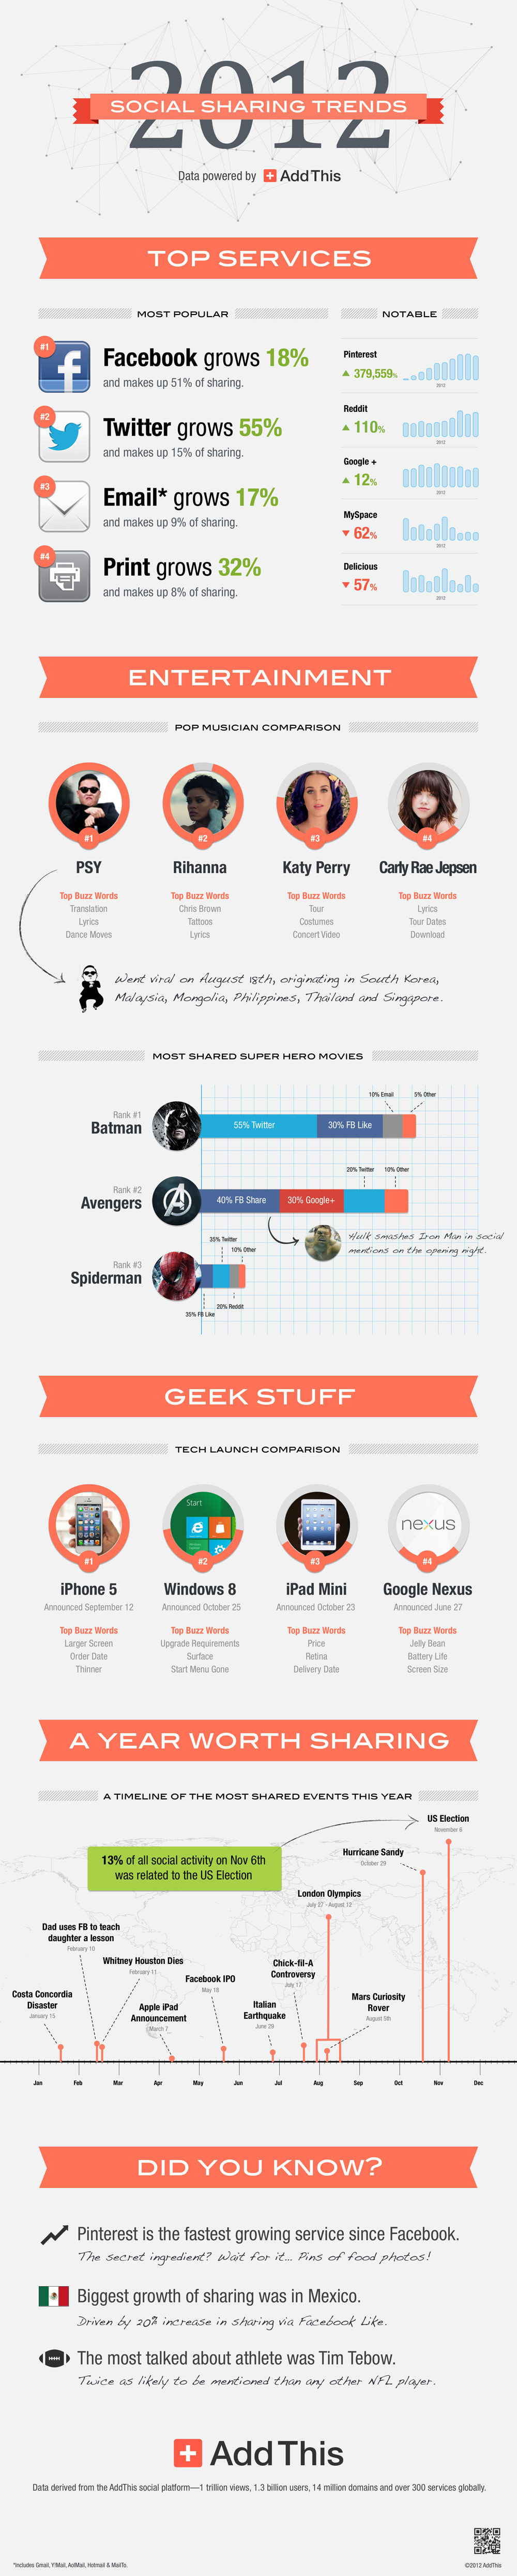 Le tendenze 2012: Social Sharing Trends